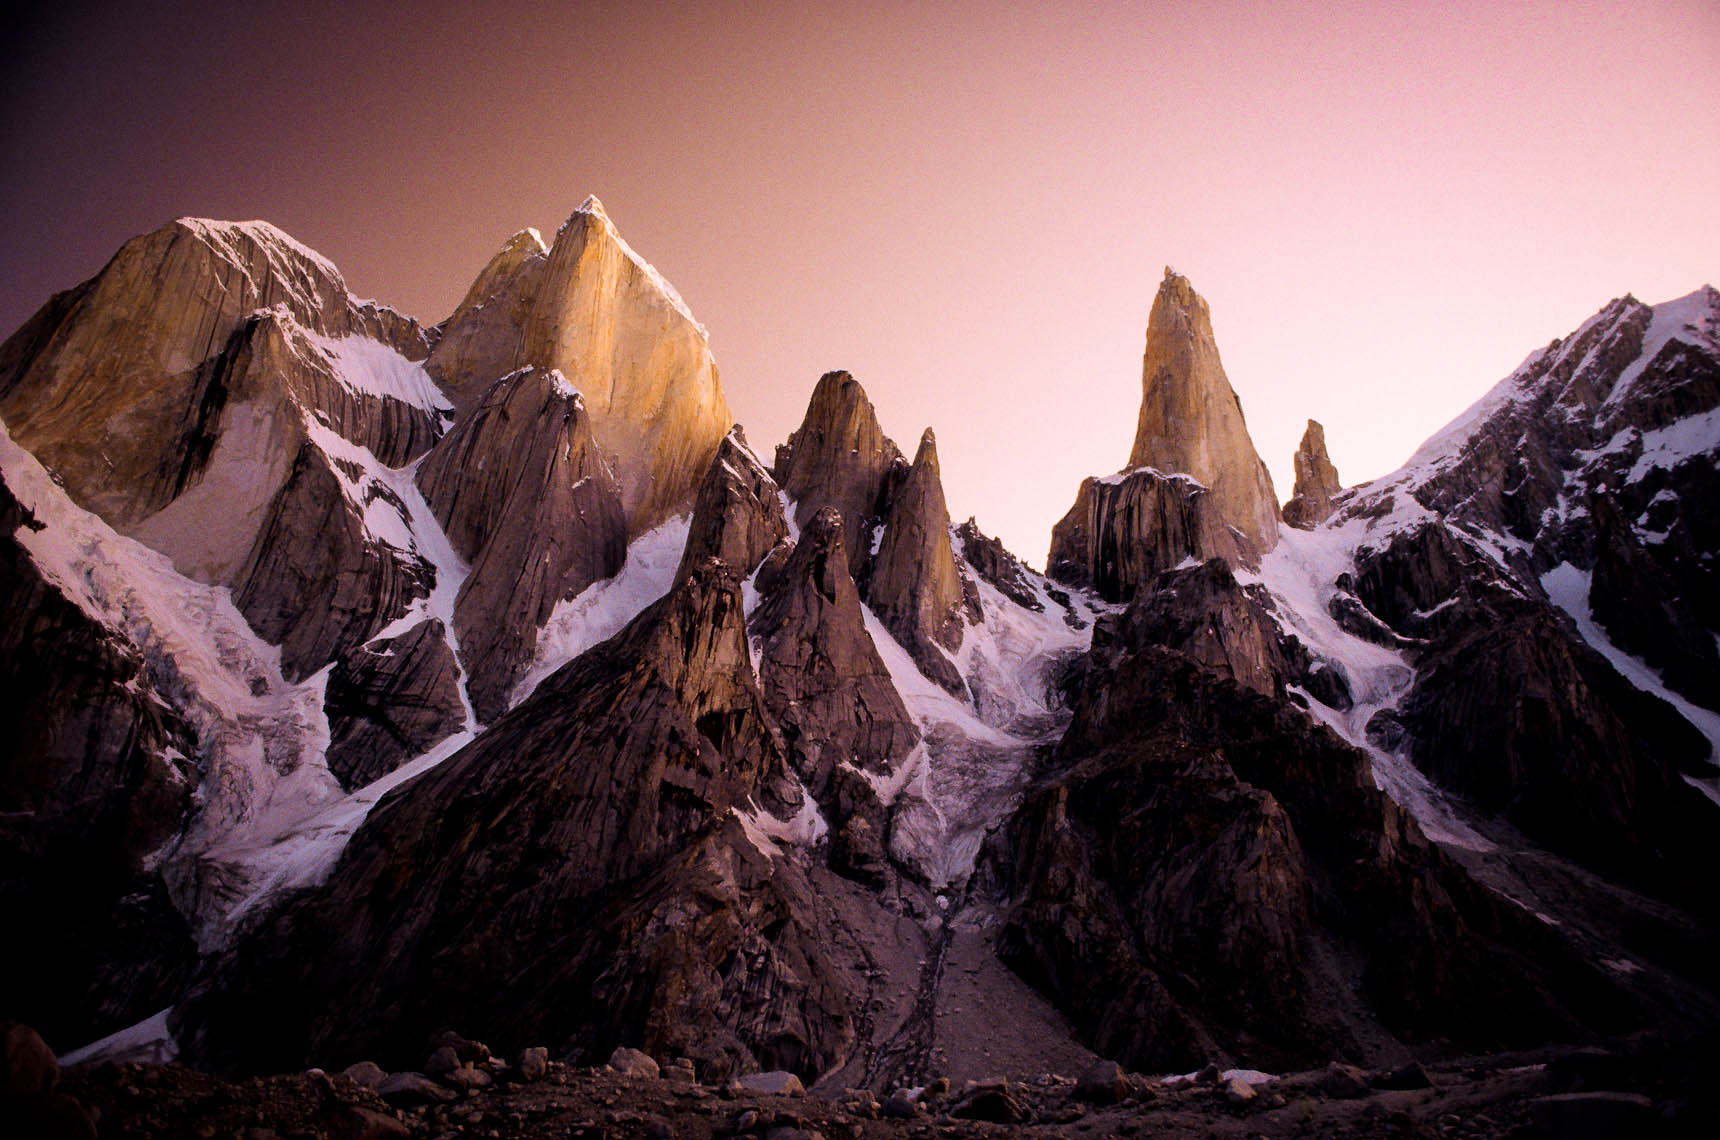 1992_Trango_Towers_Pakistan_0016_AKP